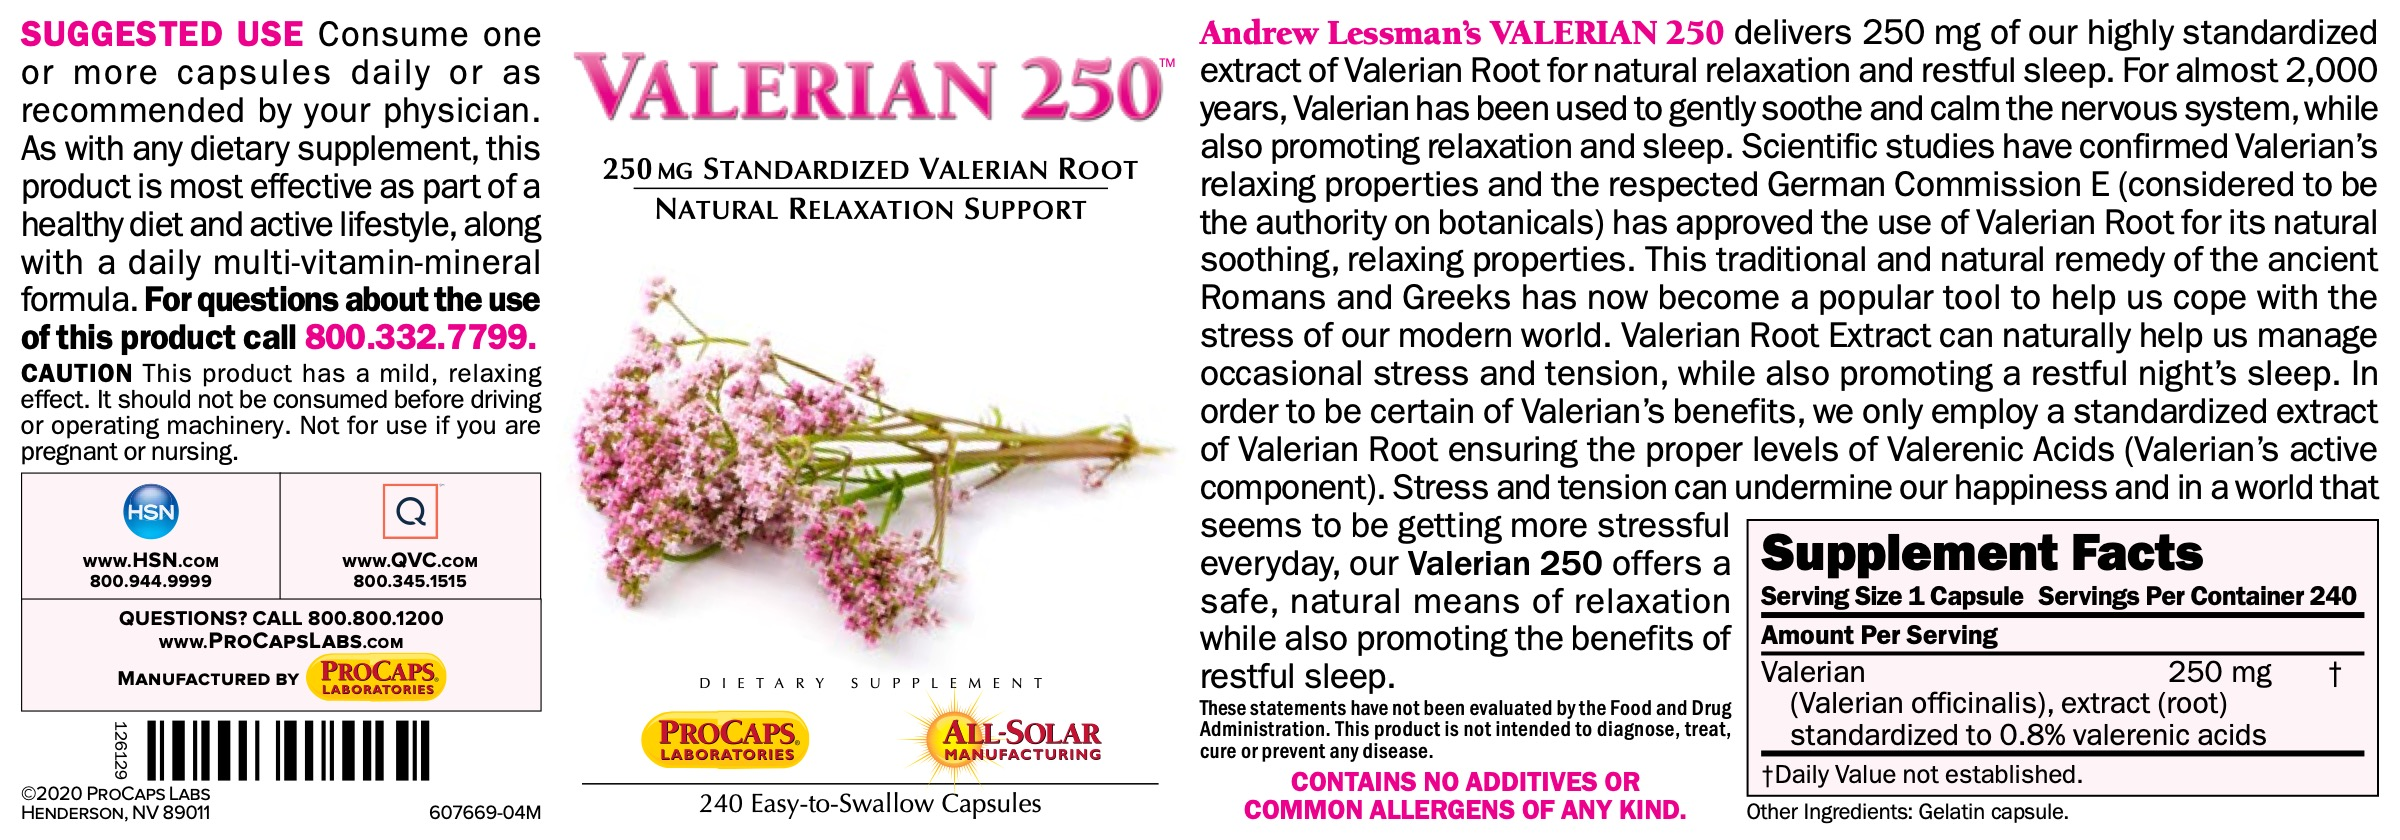 Valerian-250-Capsules-Sleep-And-Relaxation